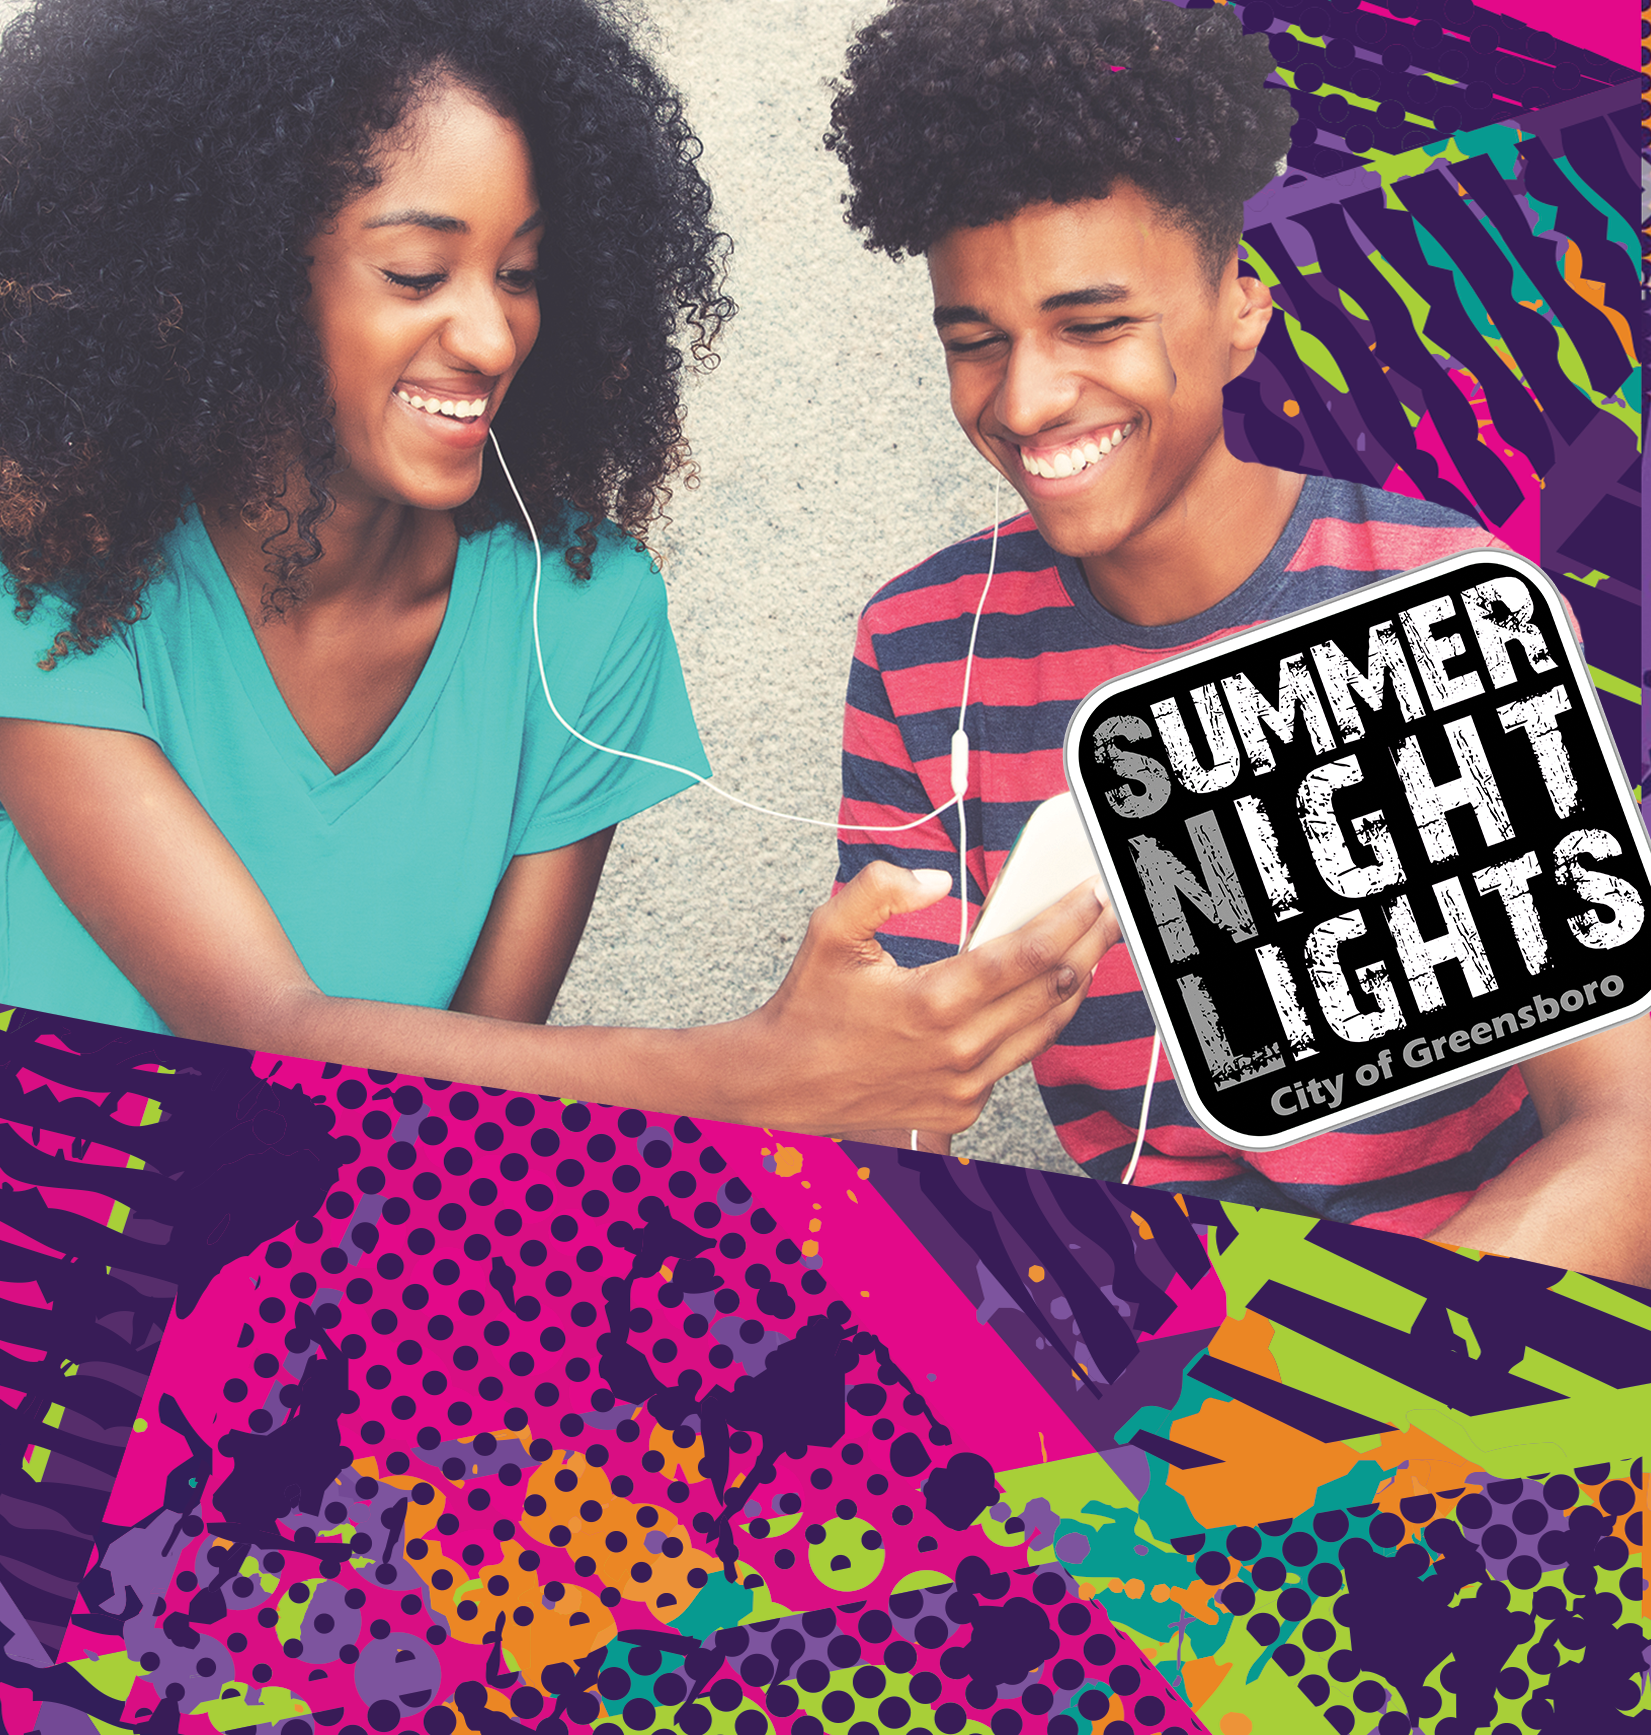 Two kids smiling and looking at a cell phone together. Text: Summer Night Lights City of Greensboro